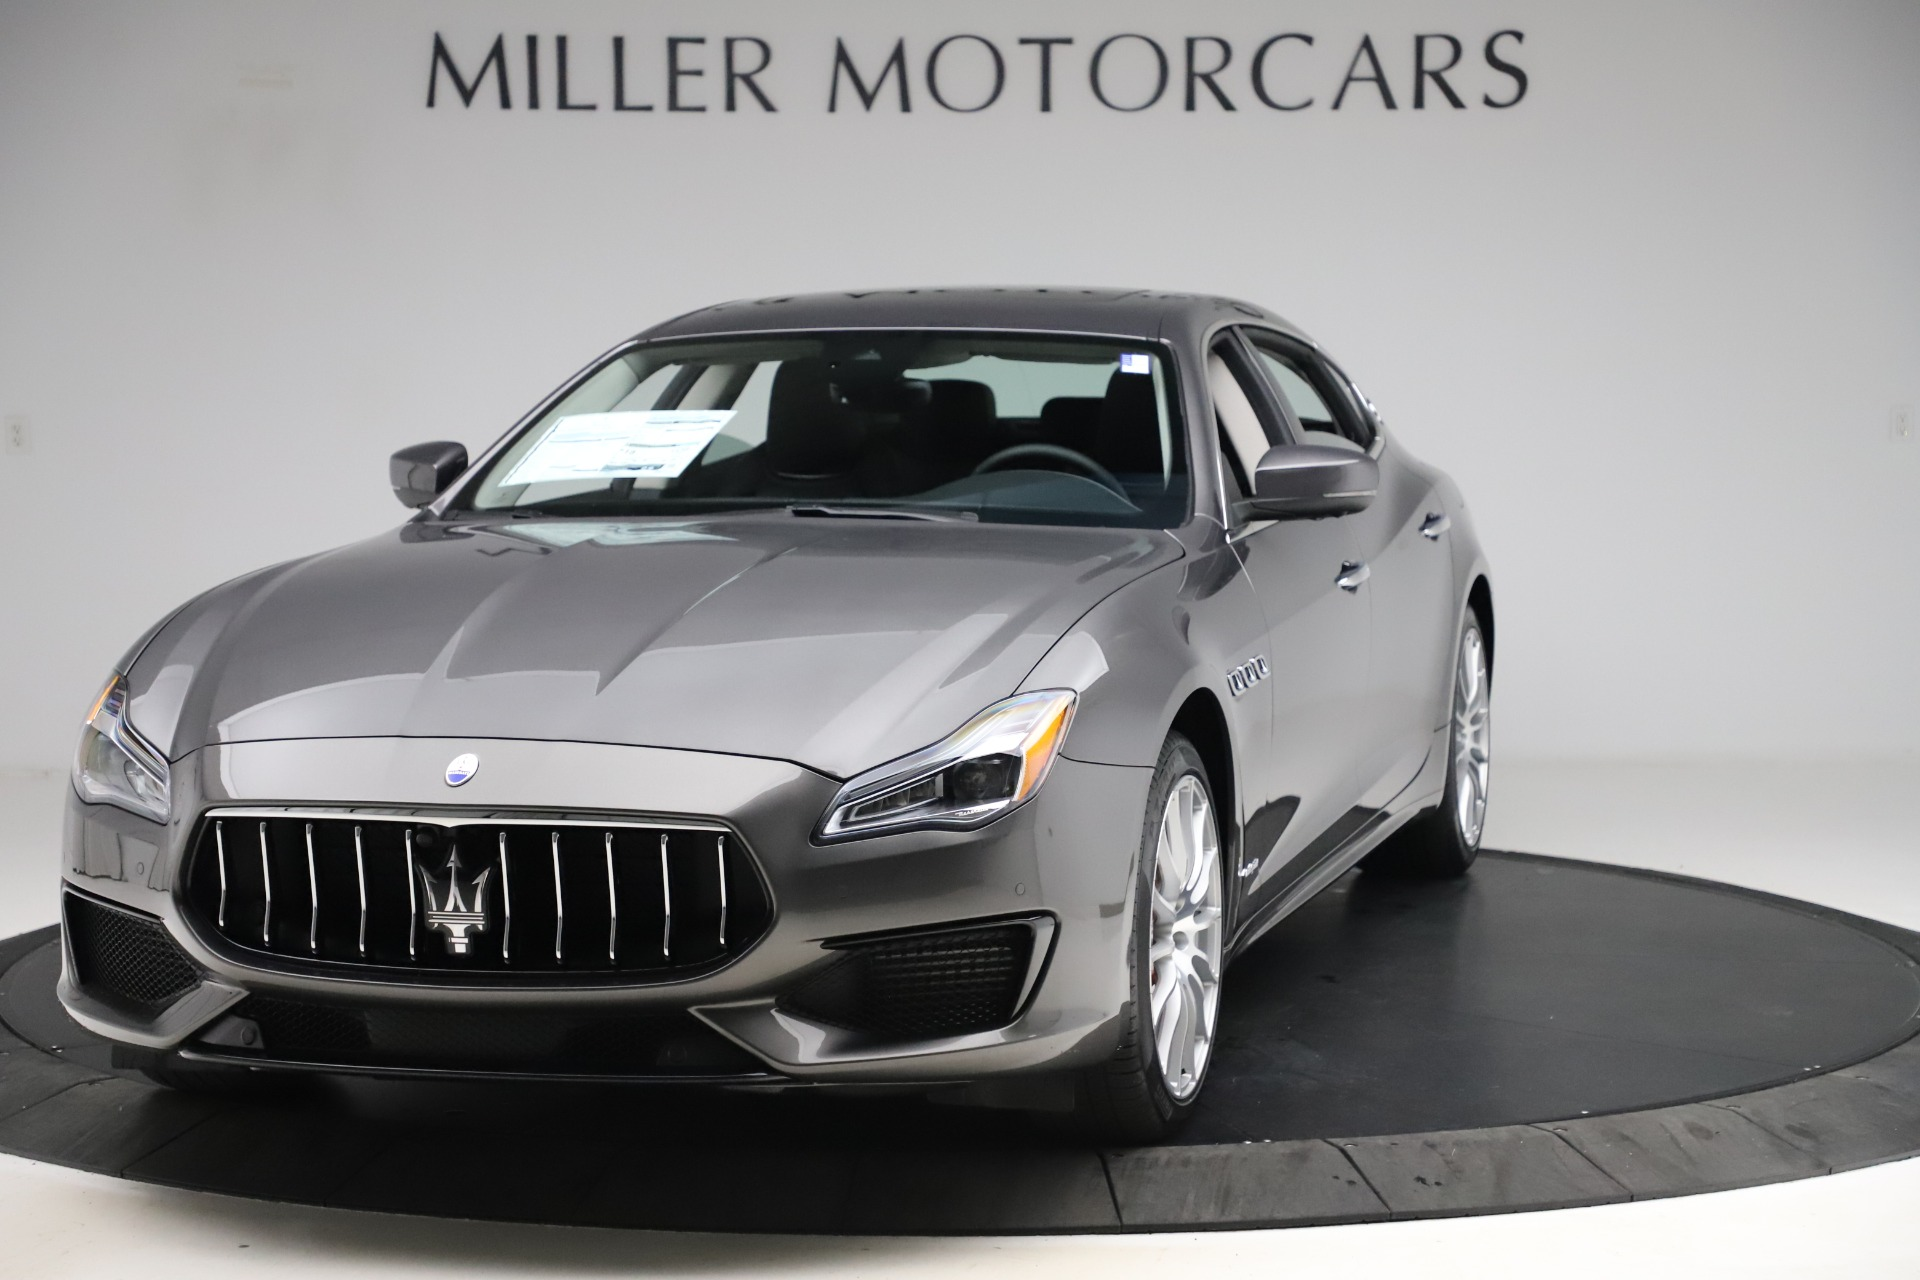 New 2020 Maserati Quattroporte S Q4 GranSport for sale $121,885 at Bentley Greenwich in Greenwich CT 06830 1